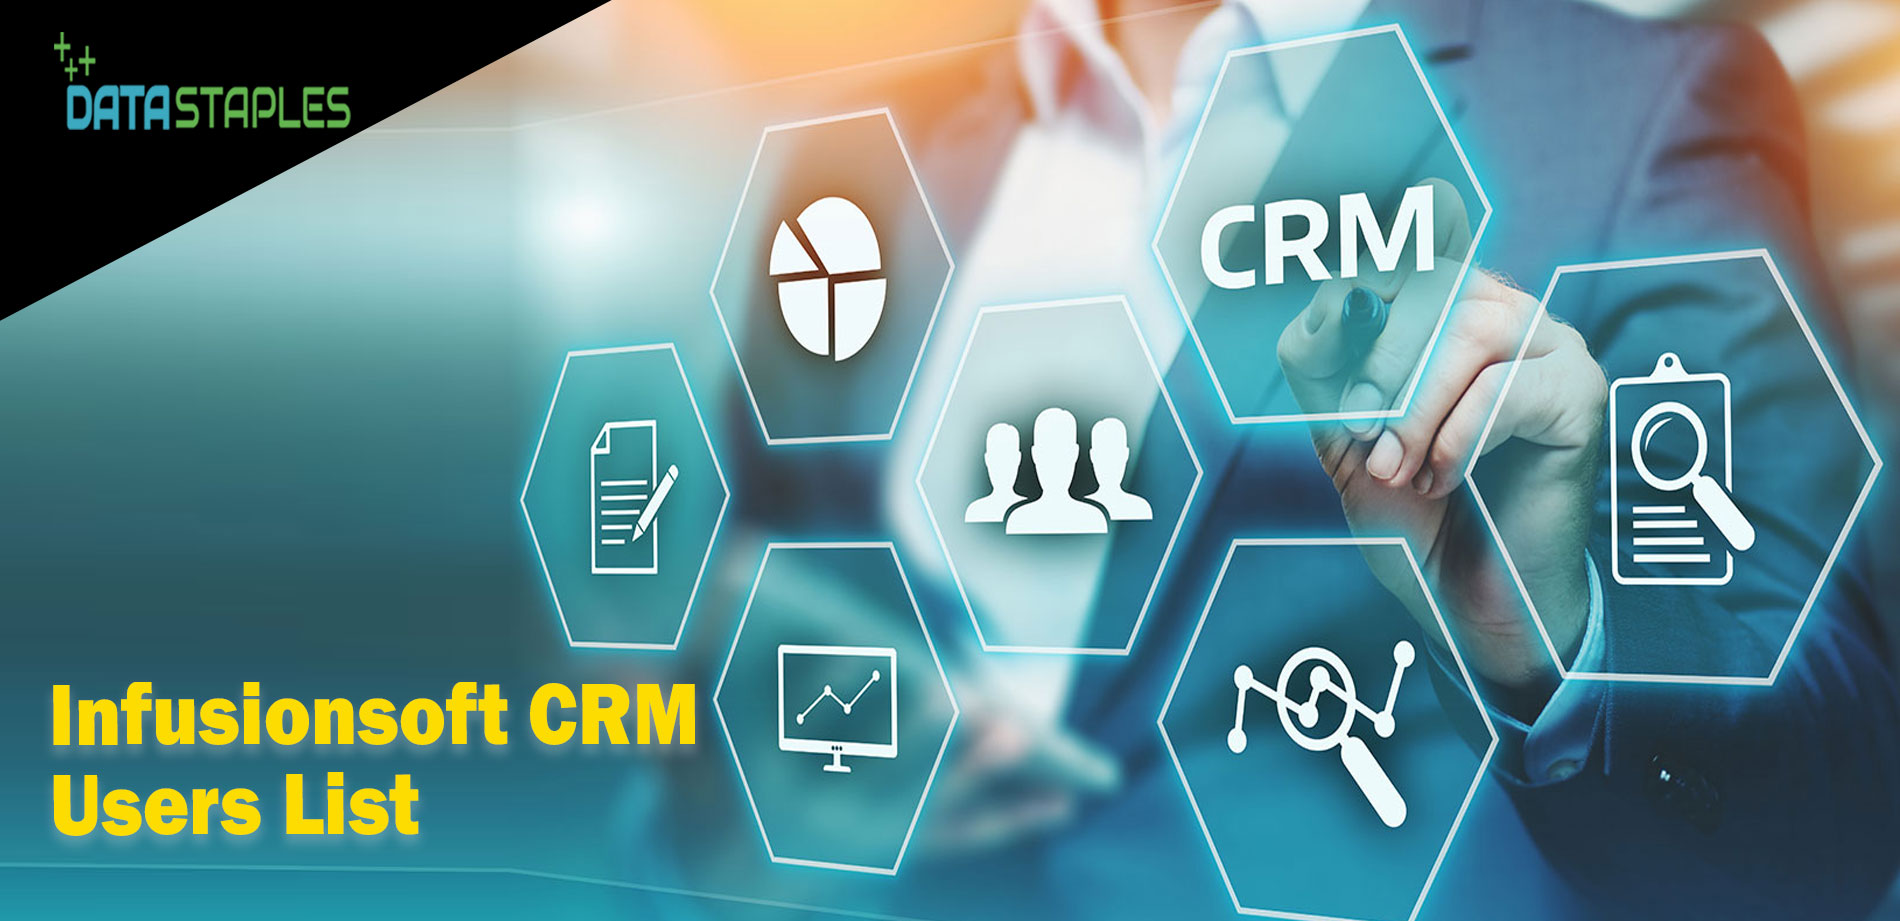 Infusionsoft CRM Users Mailing List   DataStaples